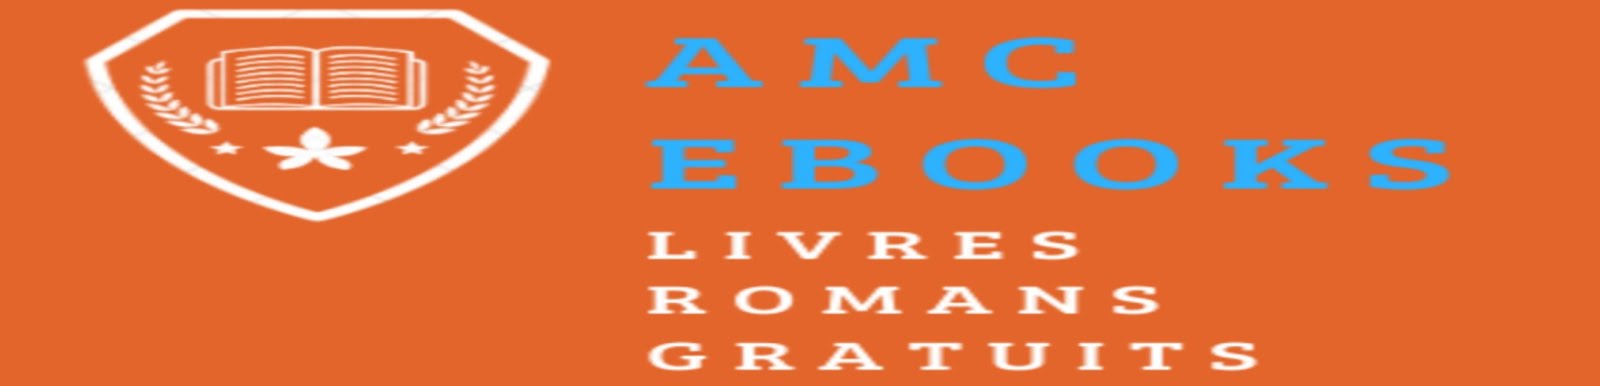 AMC eBooks- livres & romans gratuits pdf, Epub, audio